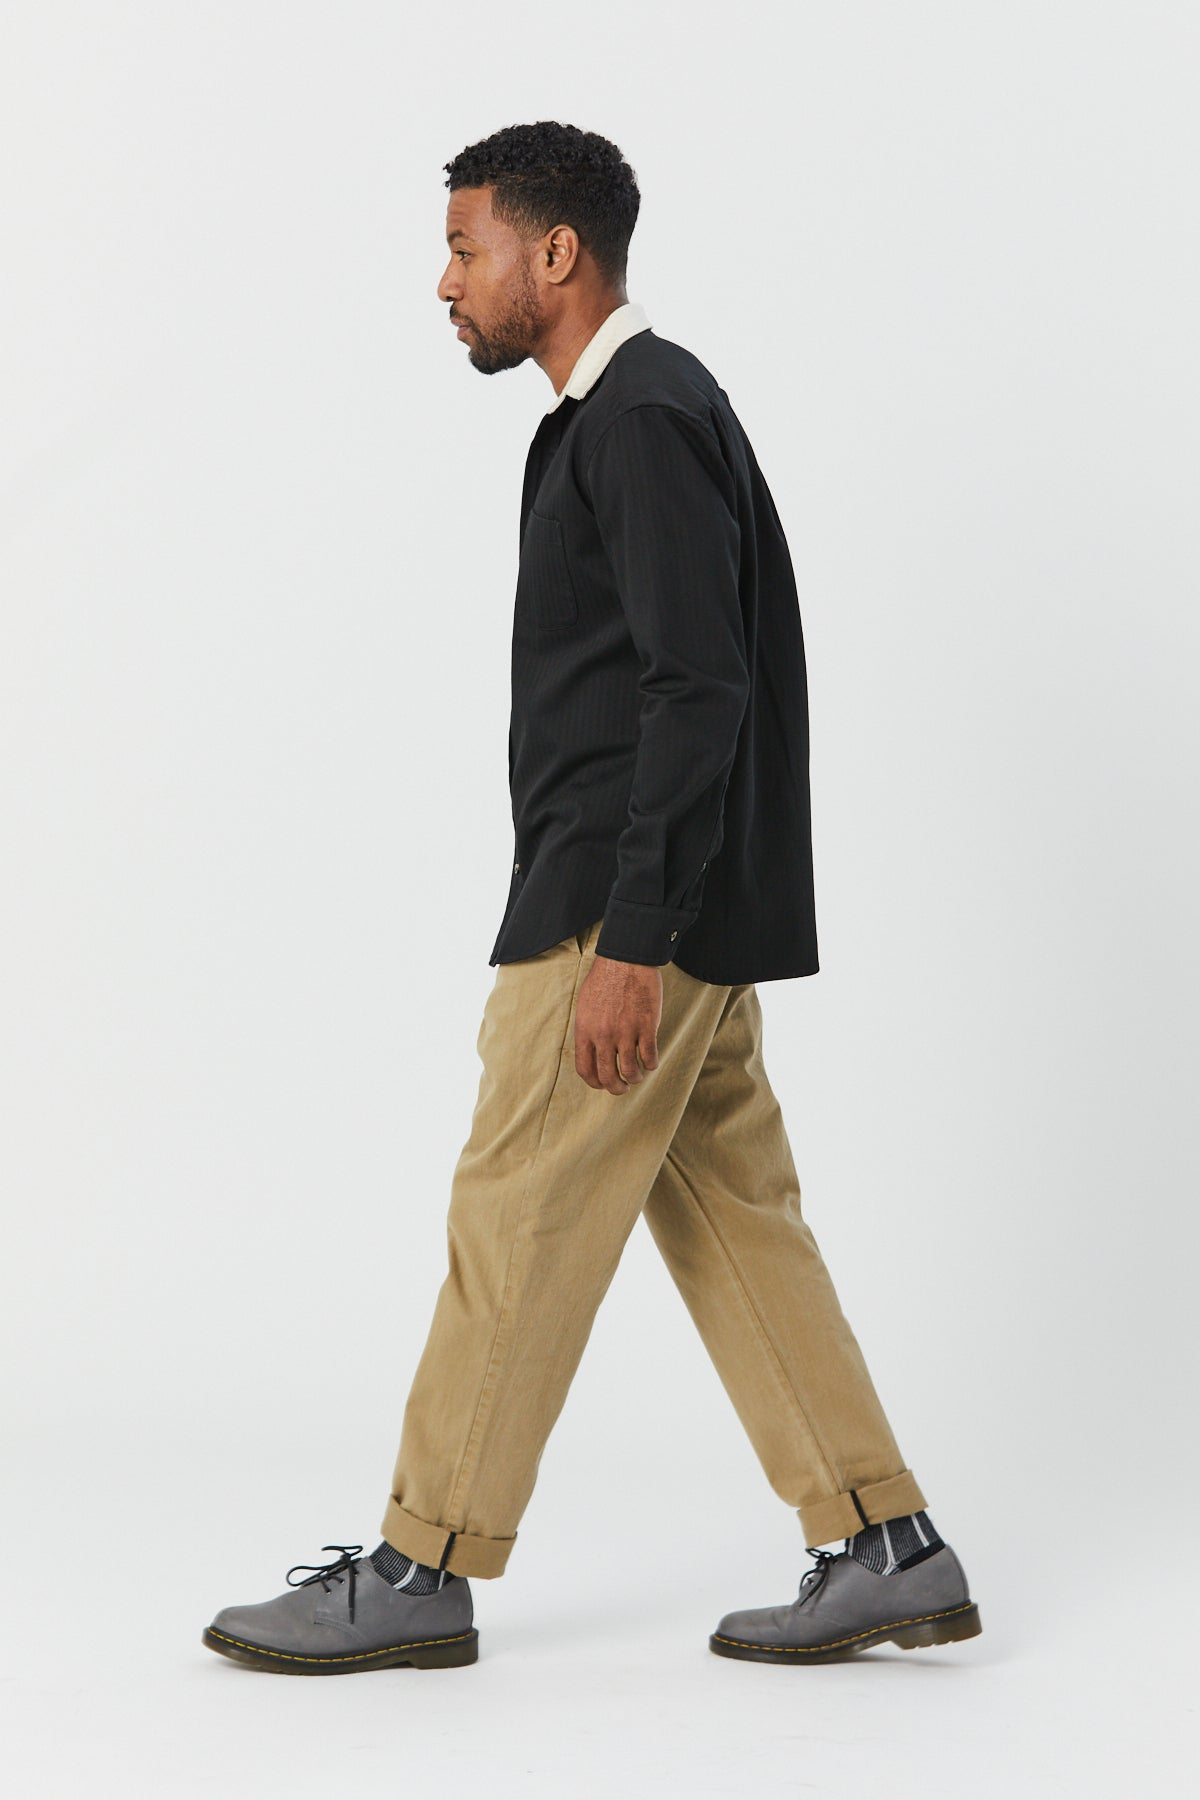 CONTRAST SHIRT IN BLACK HERRINGBONE - Fortune Goods